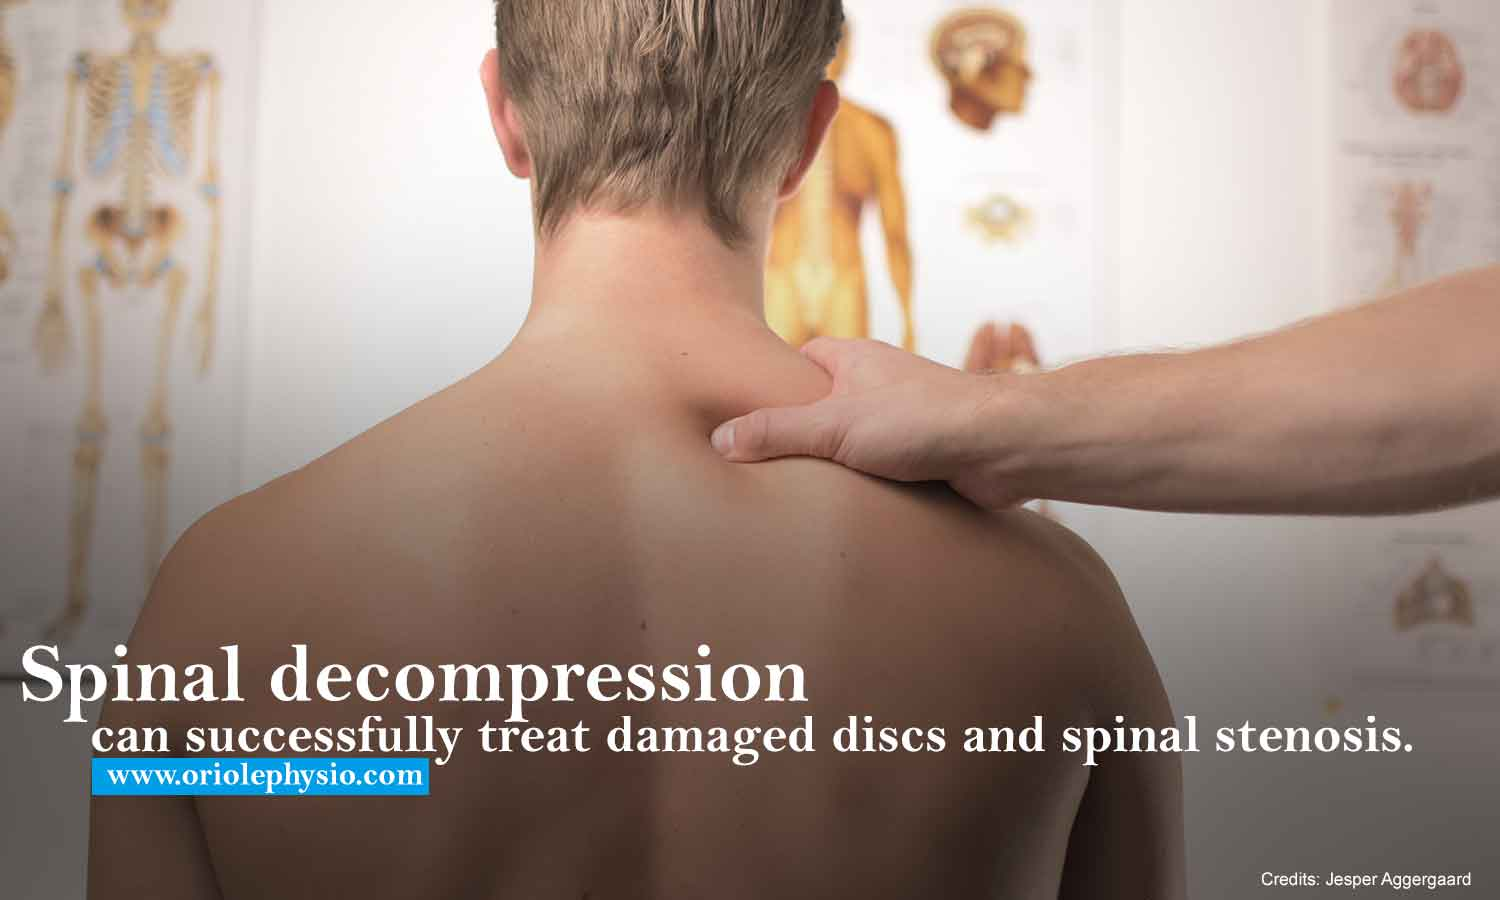 Spinal decompression can successfully treat damaged discs and spinal stenosis.